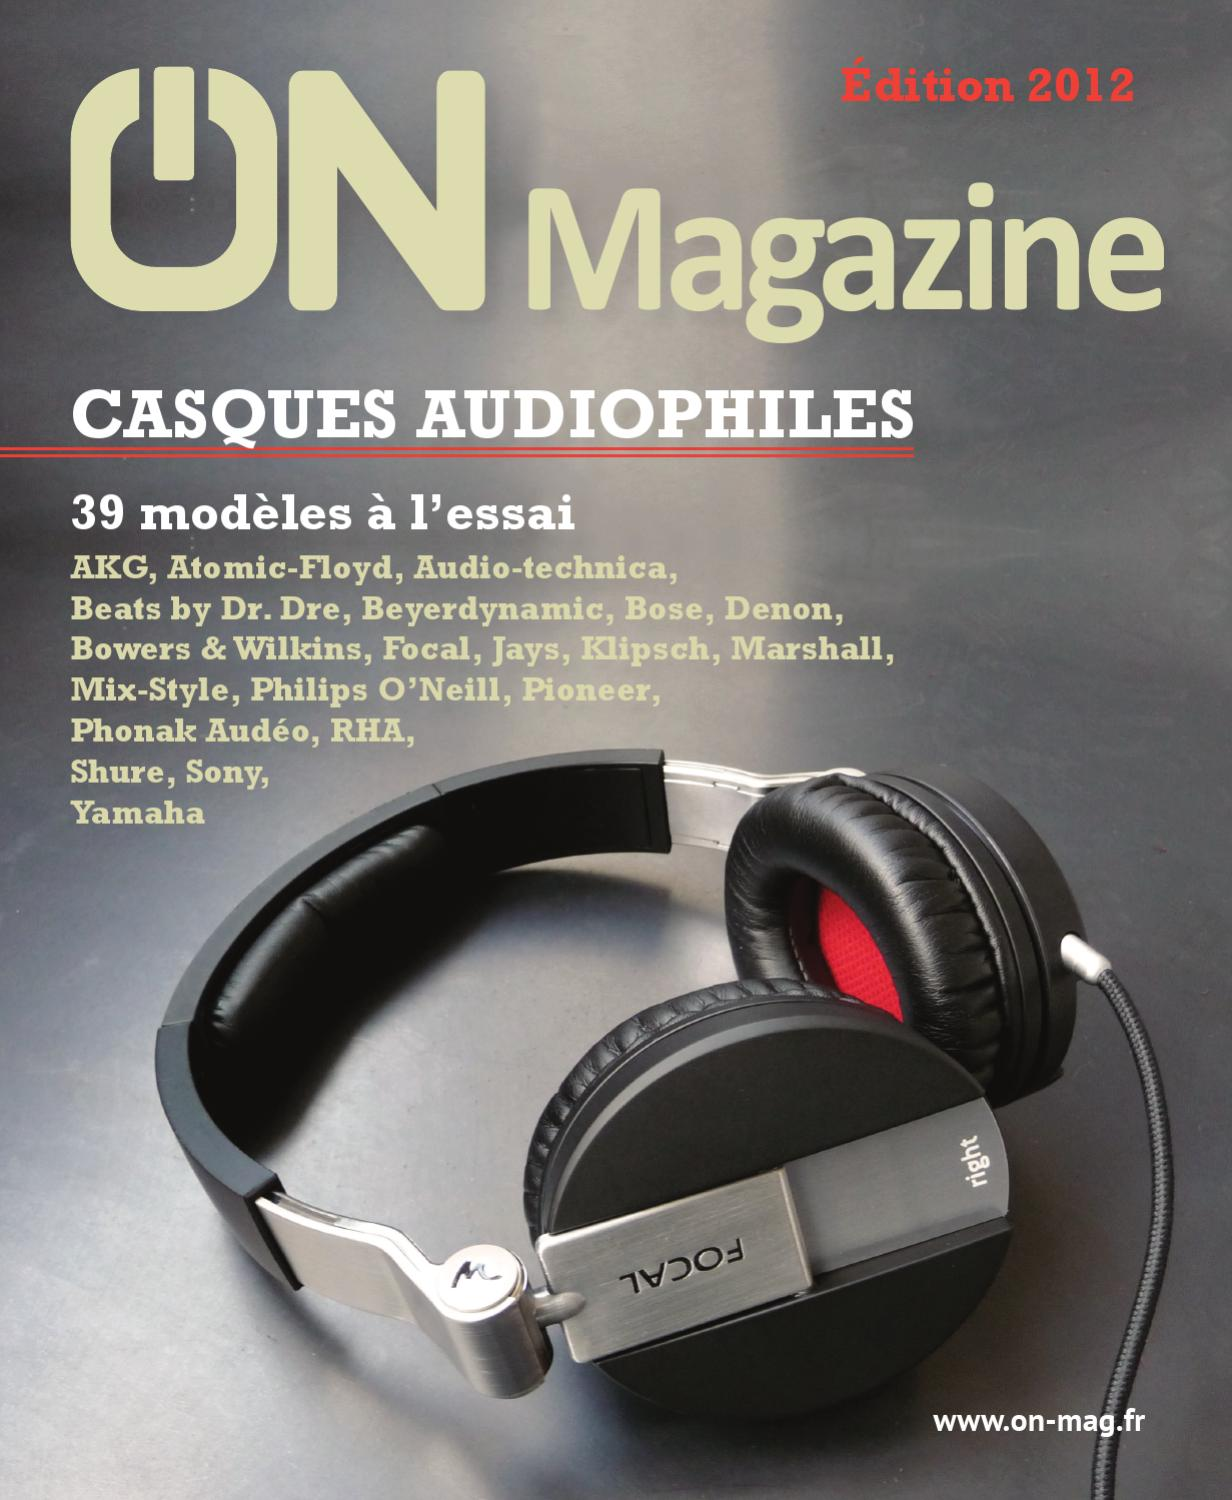 On Magazine Guide Casques Audiophiles 2012 By On Magazine Issuu